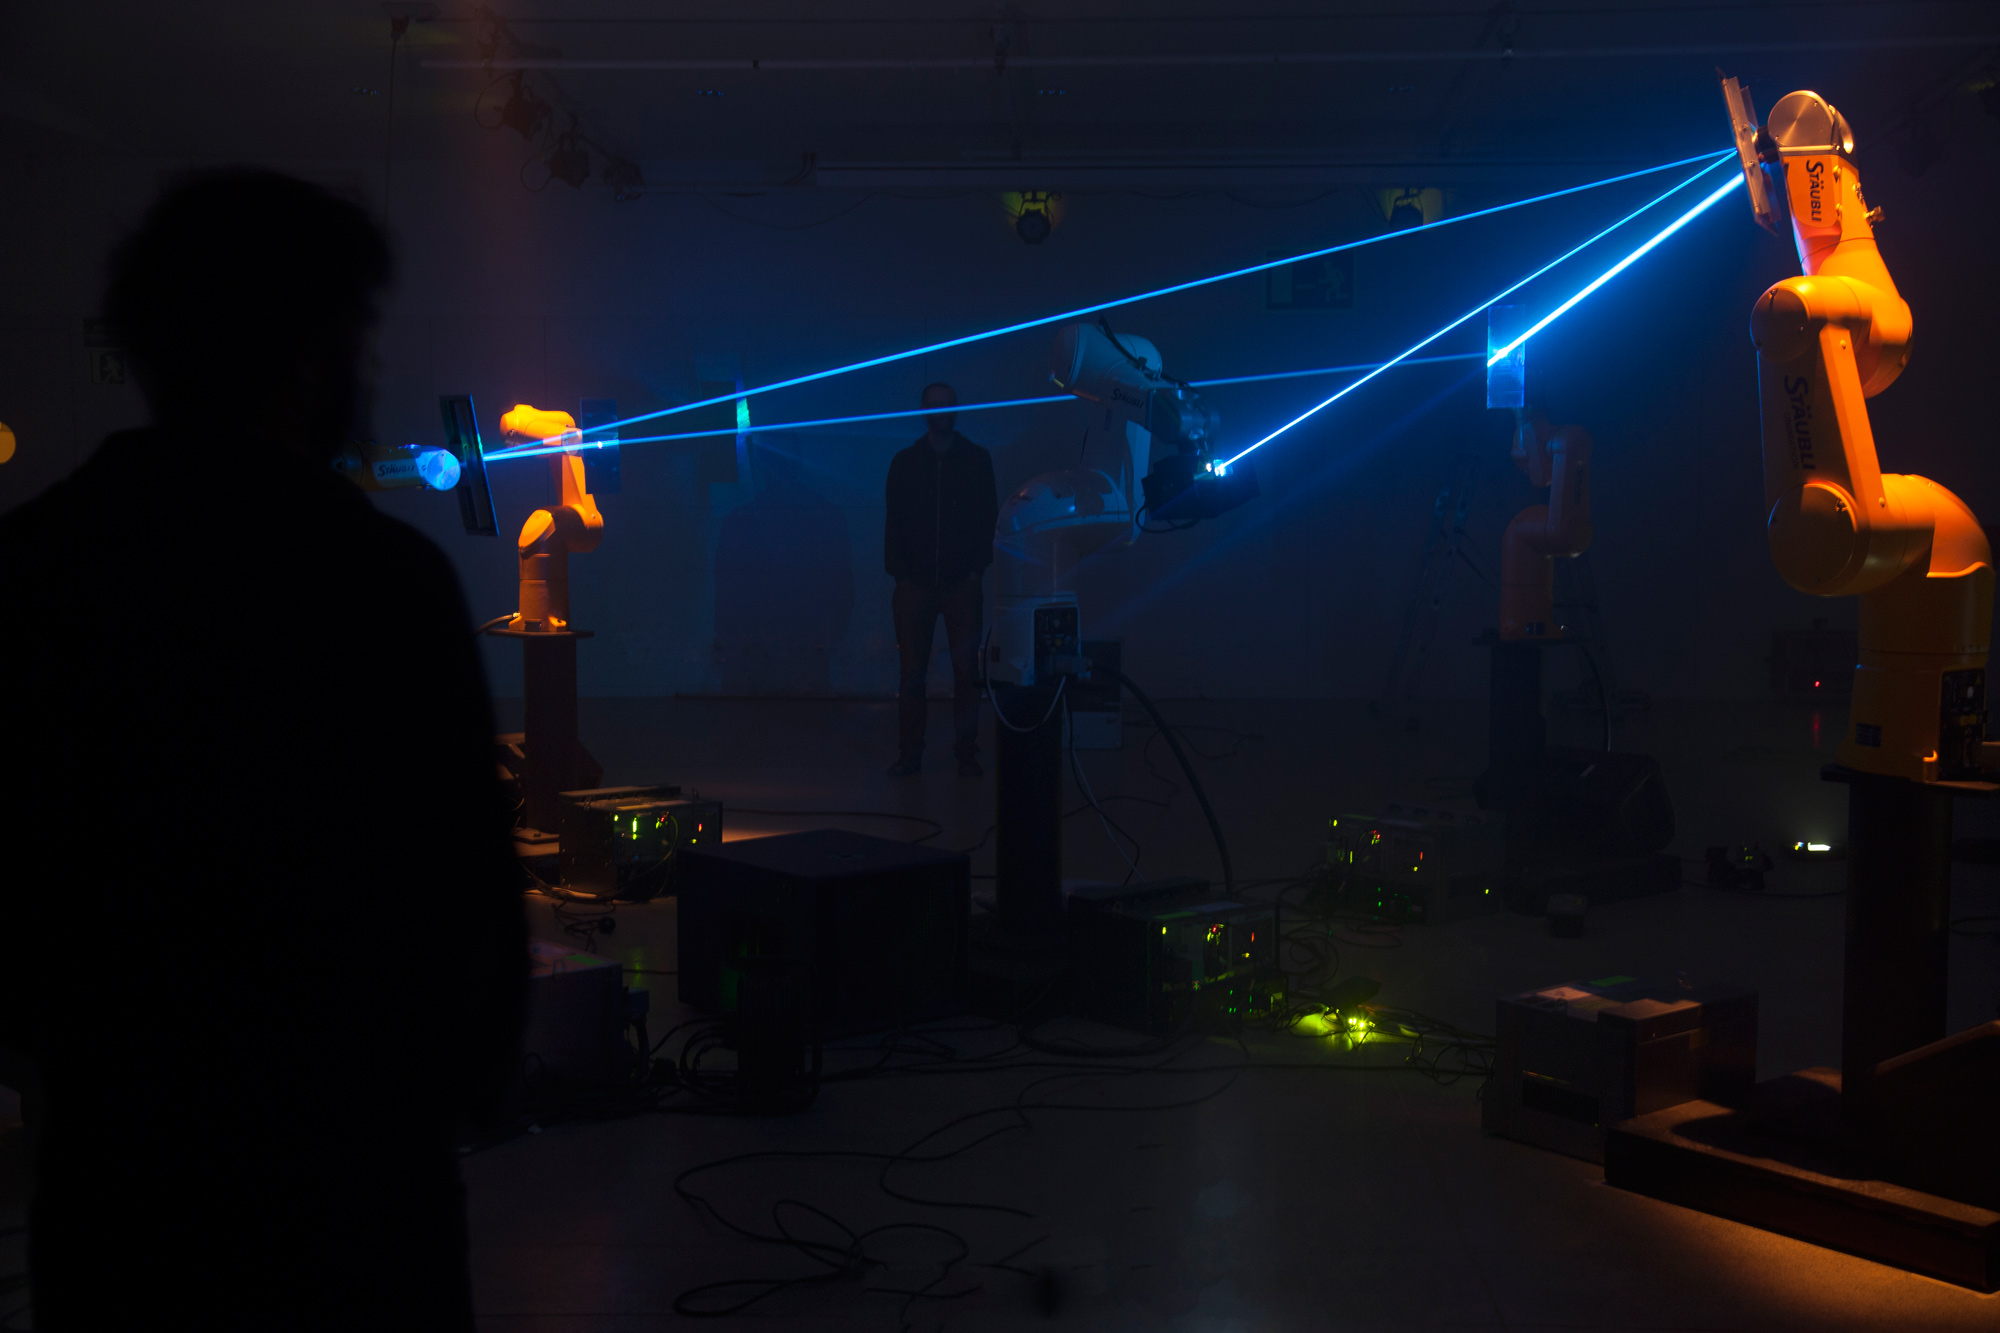 Robotic arms playing with a laser beam in front of the audience.